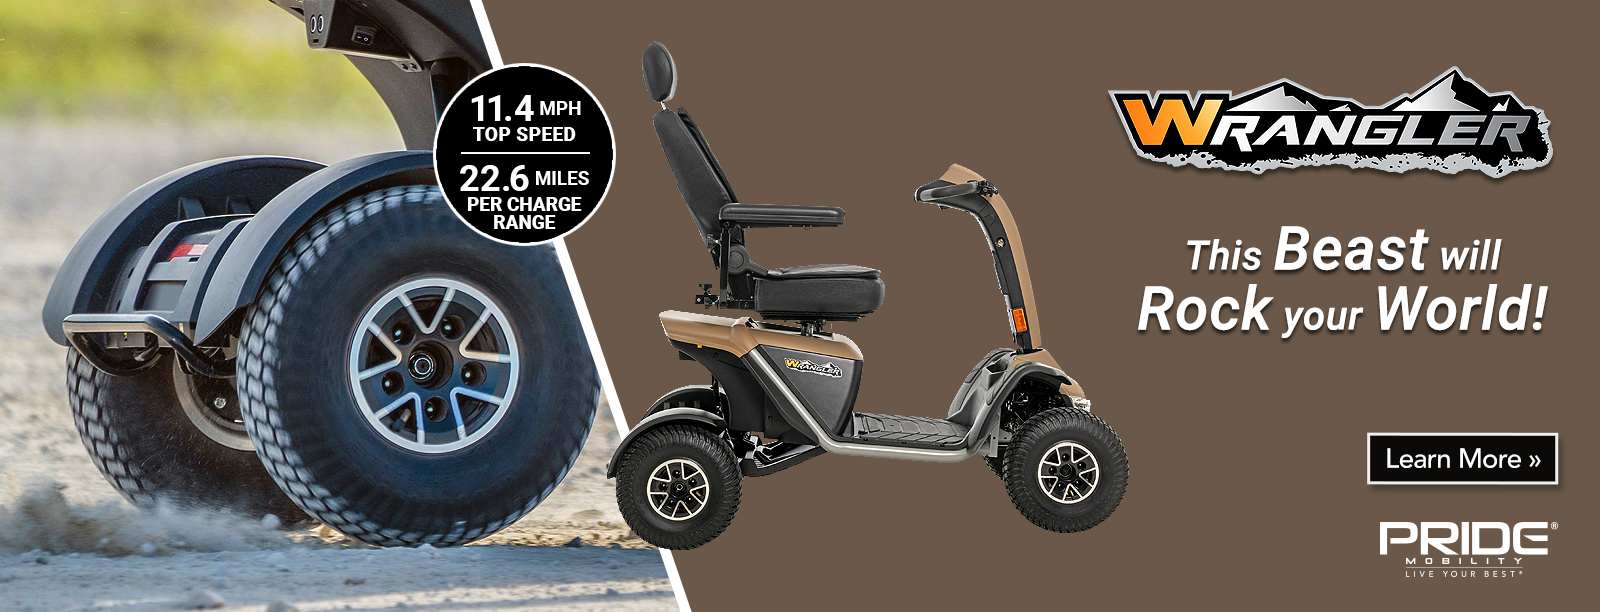 New Pride Mobility Wrangler 4 Wheel Personal Mobility Scooter